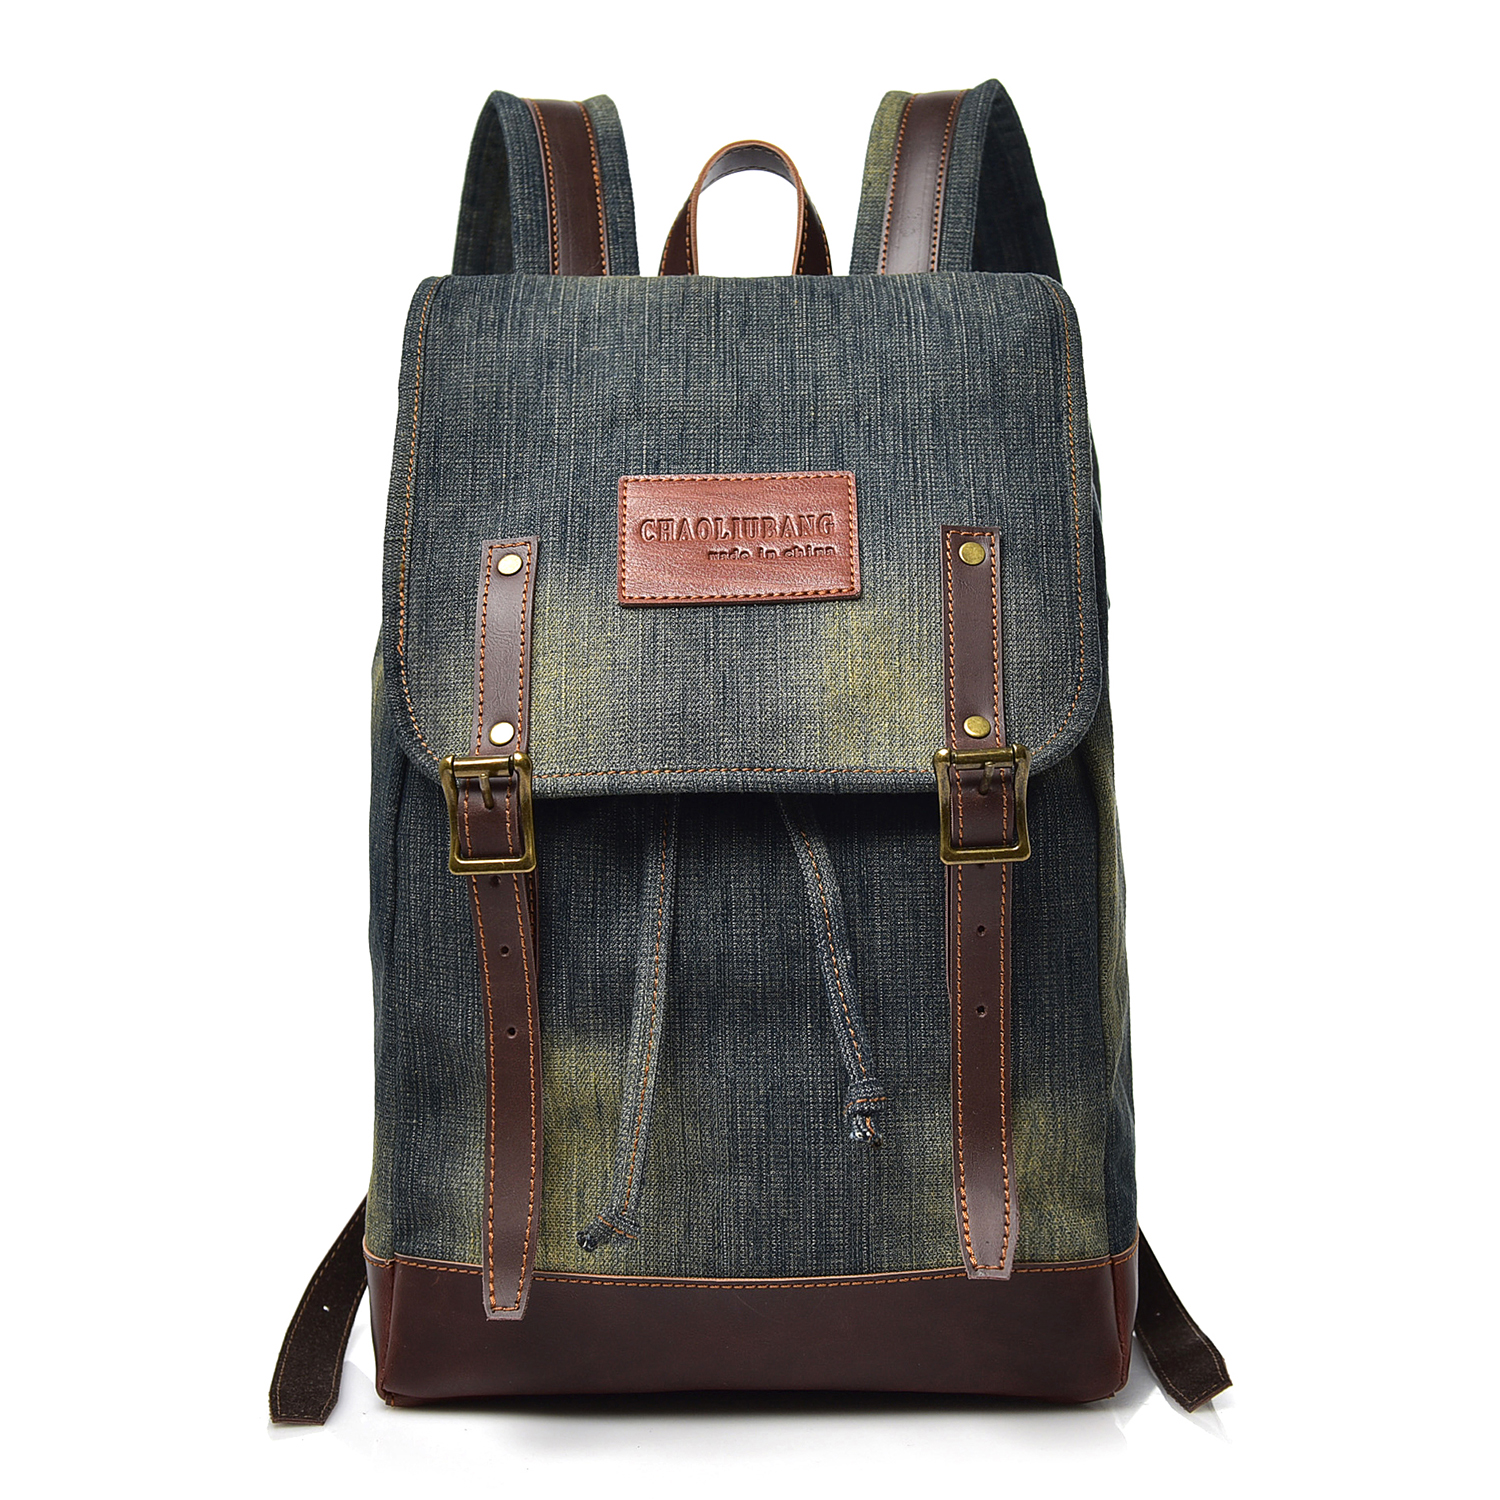 2018 Fashion Women Denim Backpack Famous Designers Brand Canvas Shoulder Bag Leisure Backpack for Girl or College Student рюкзак fashion tender 2015 z 082 canvas bag fashion college backpack women vintage backpack